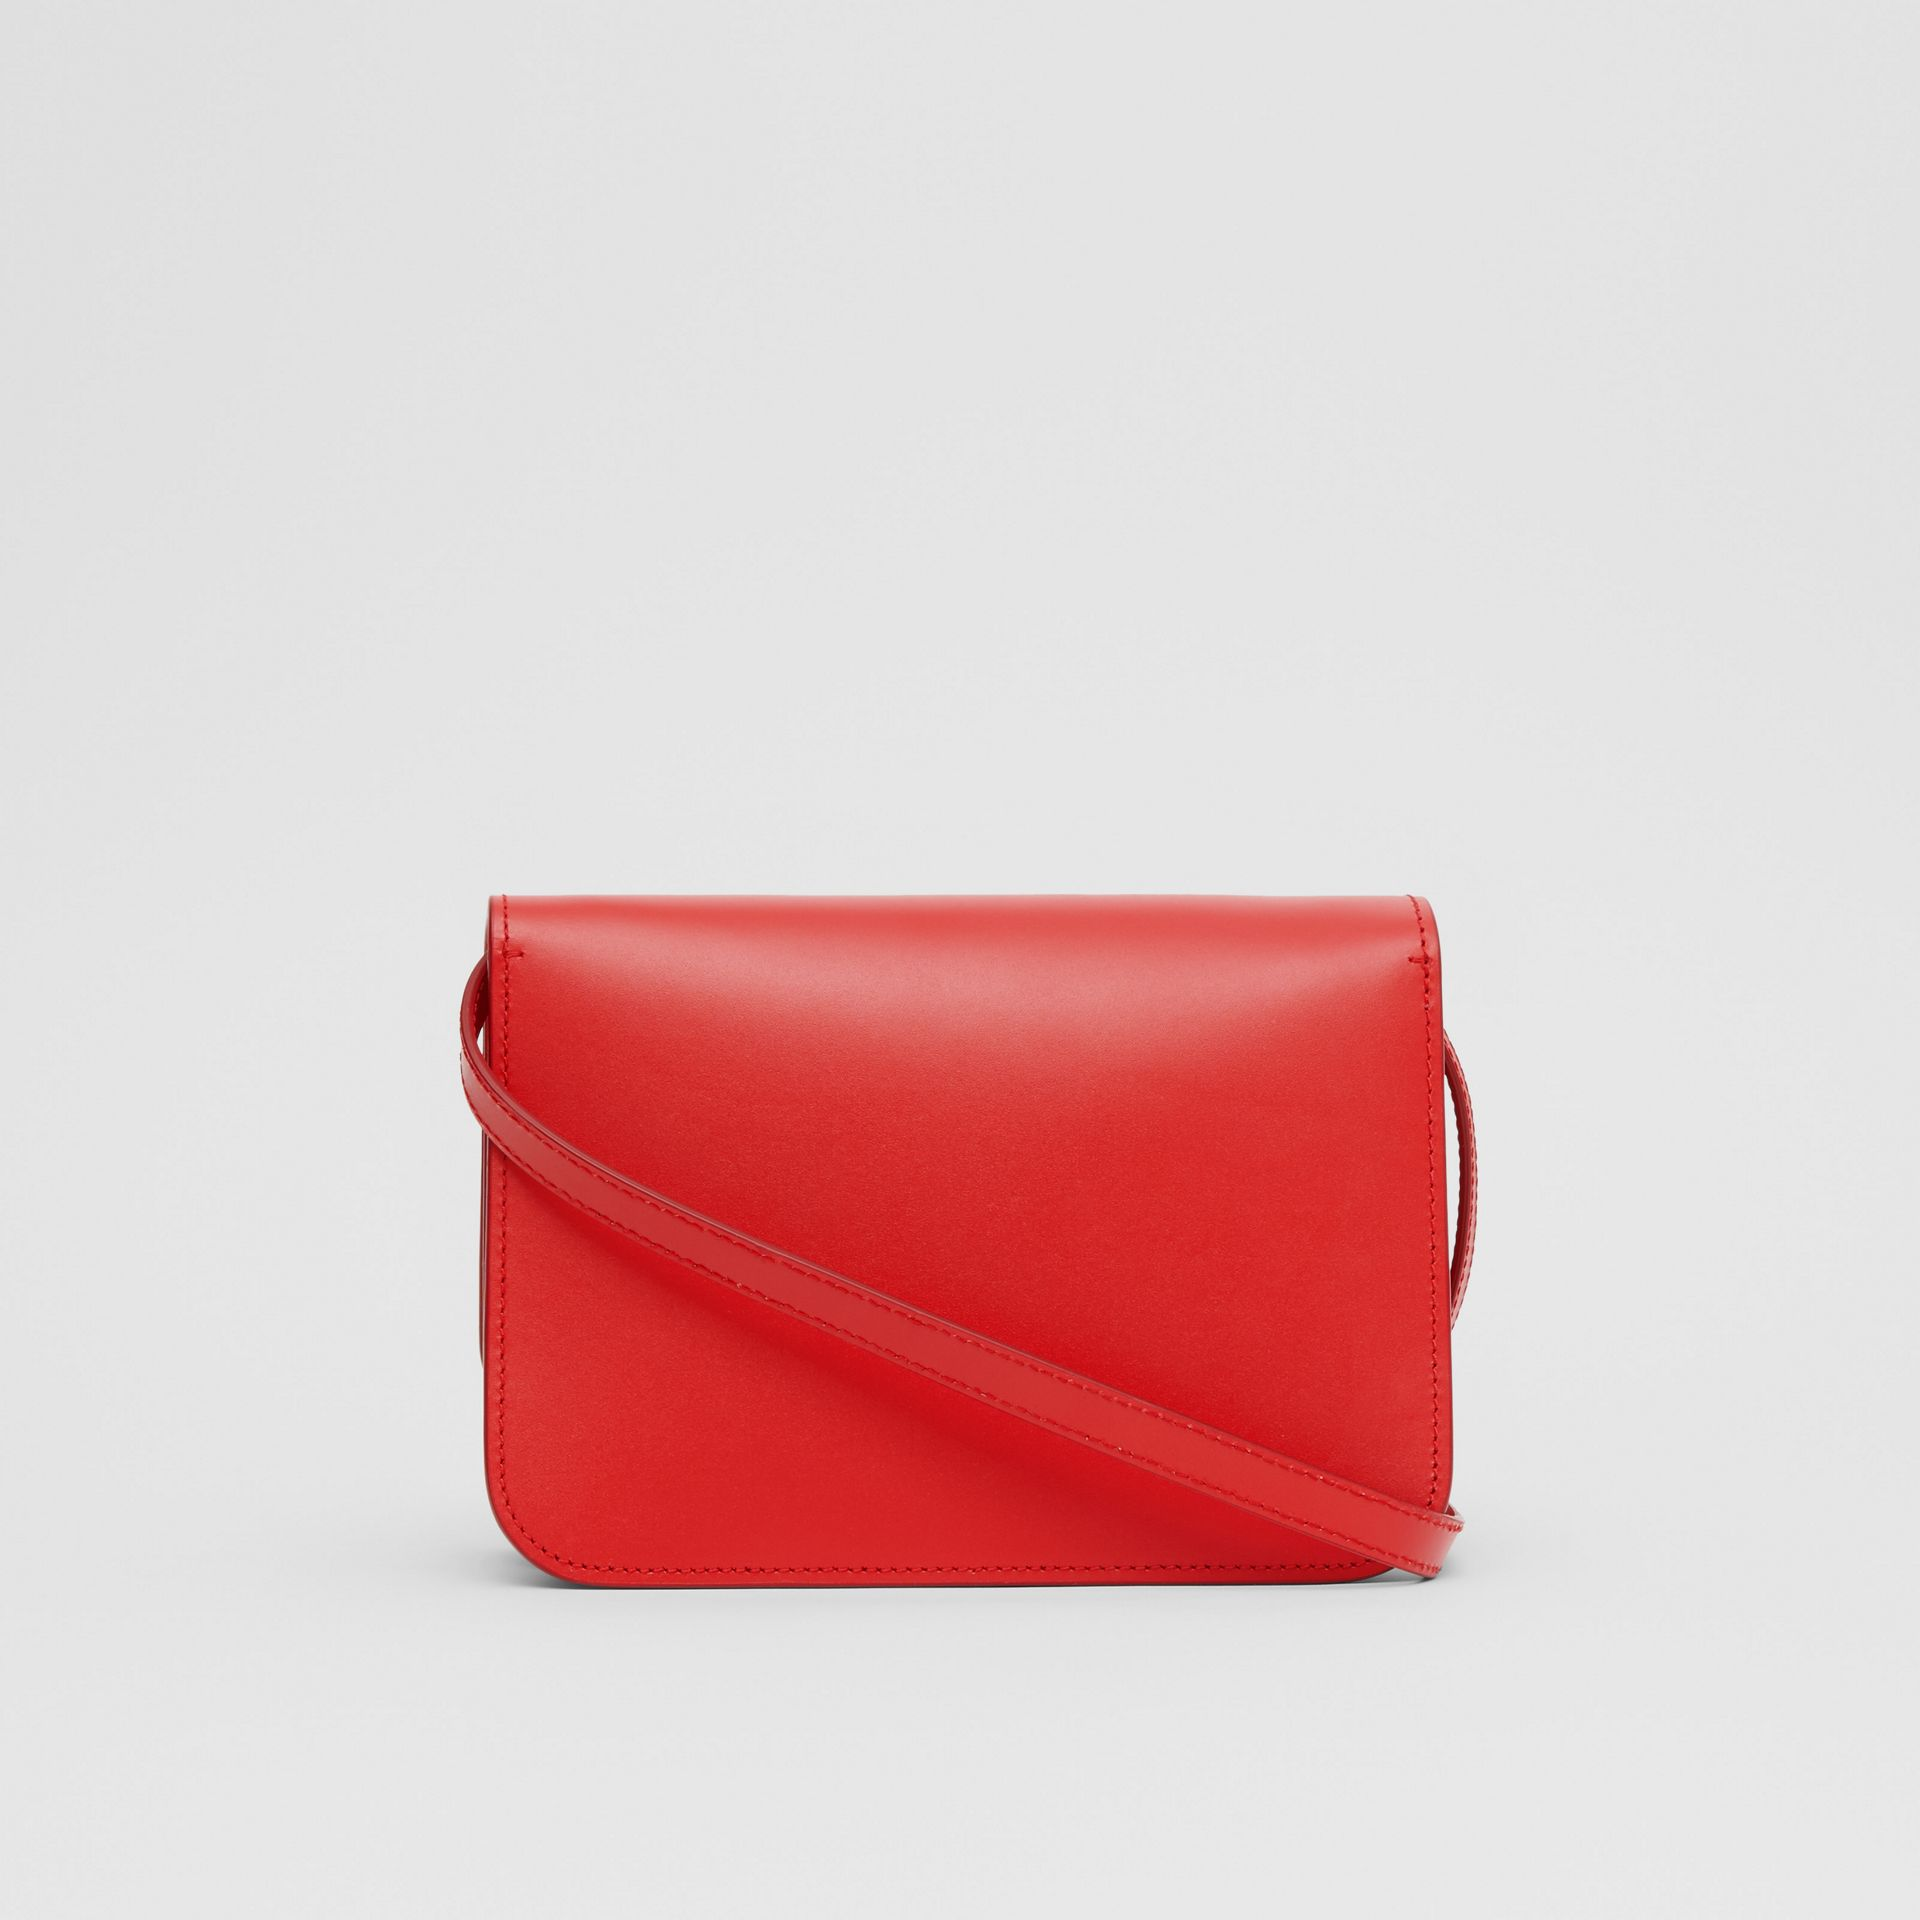 Small Leather TB Bag in Bright Red - Women | Burberry United Kingdom - gallery image 5